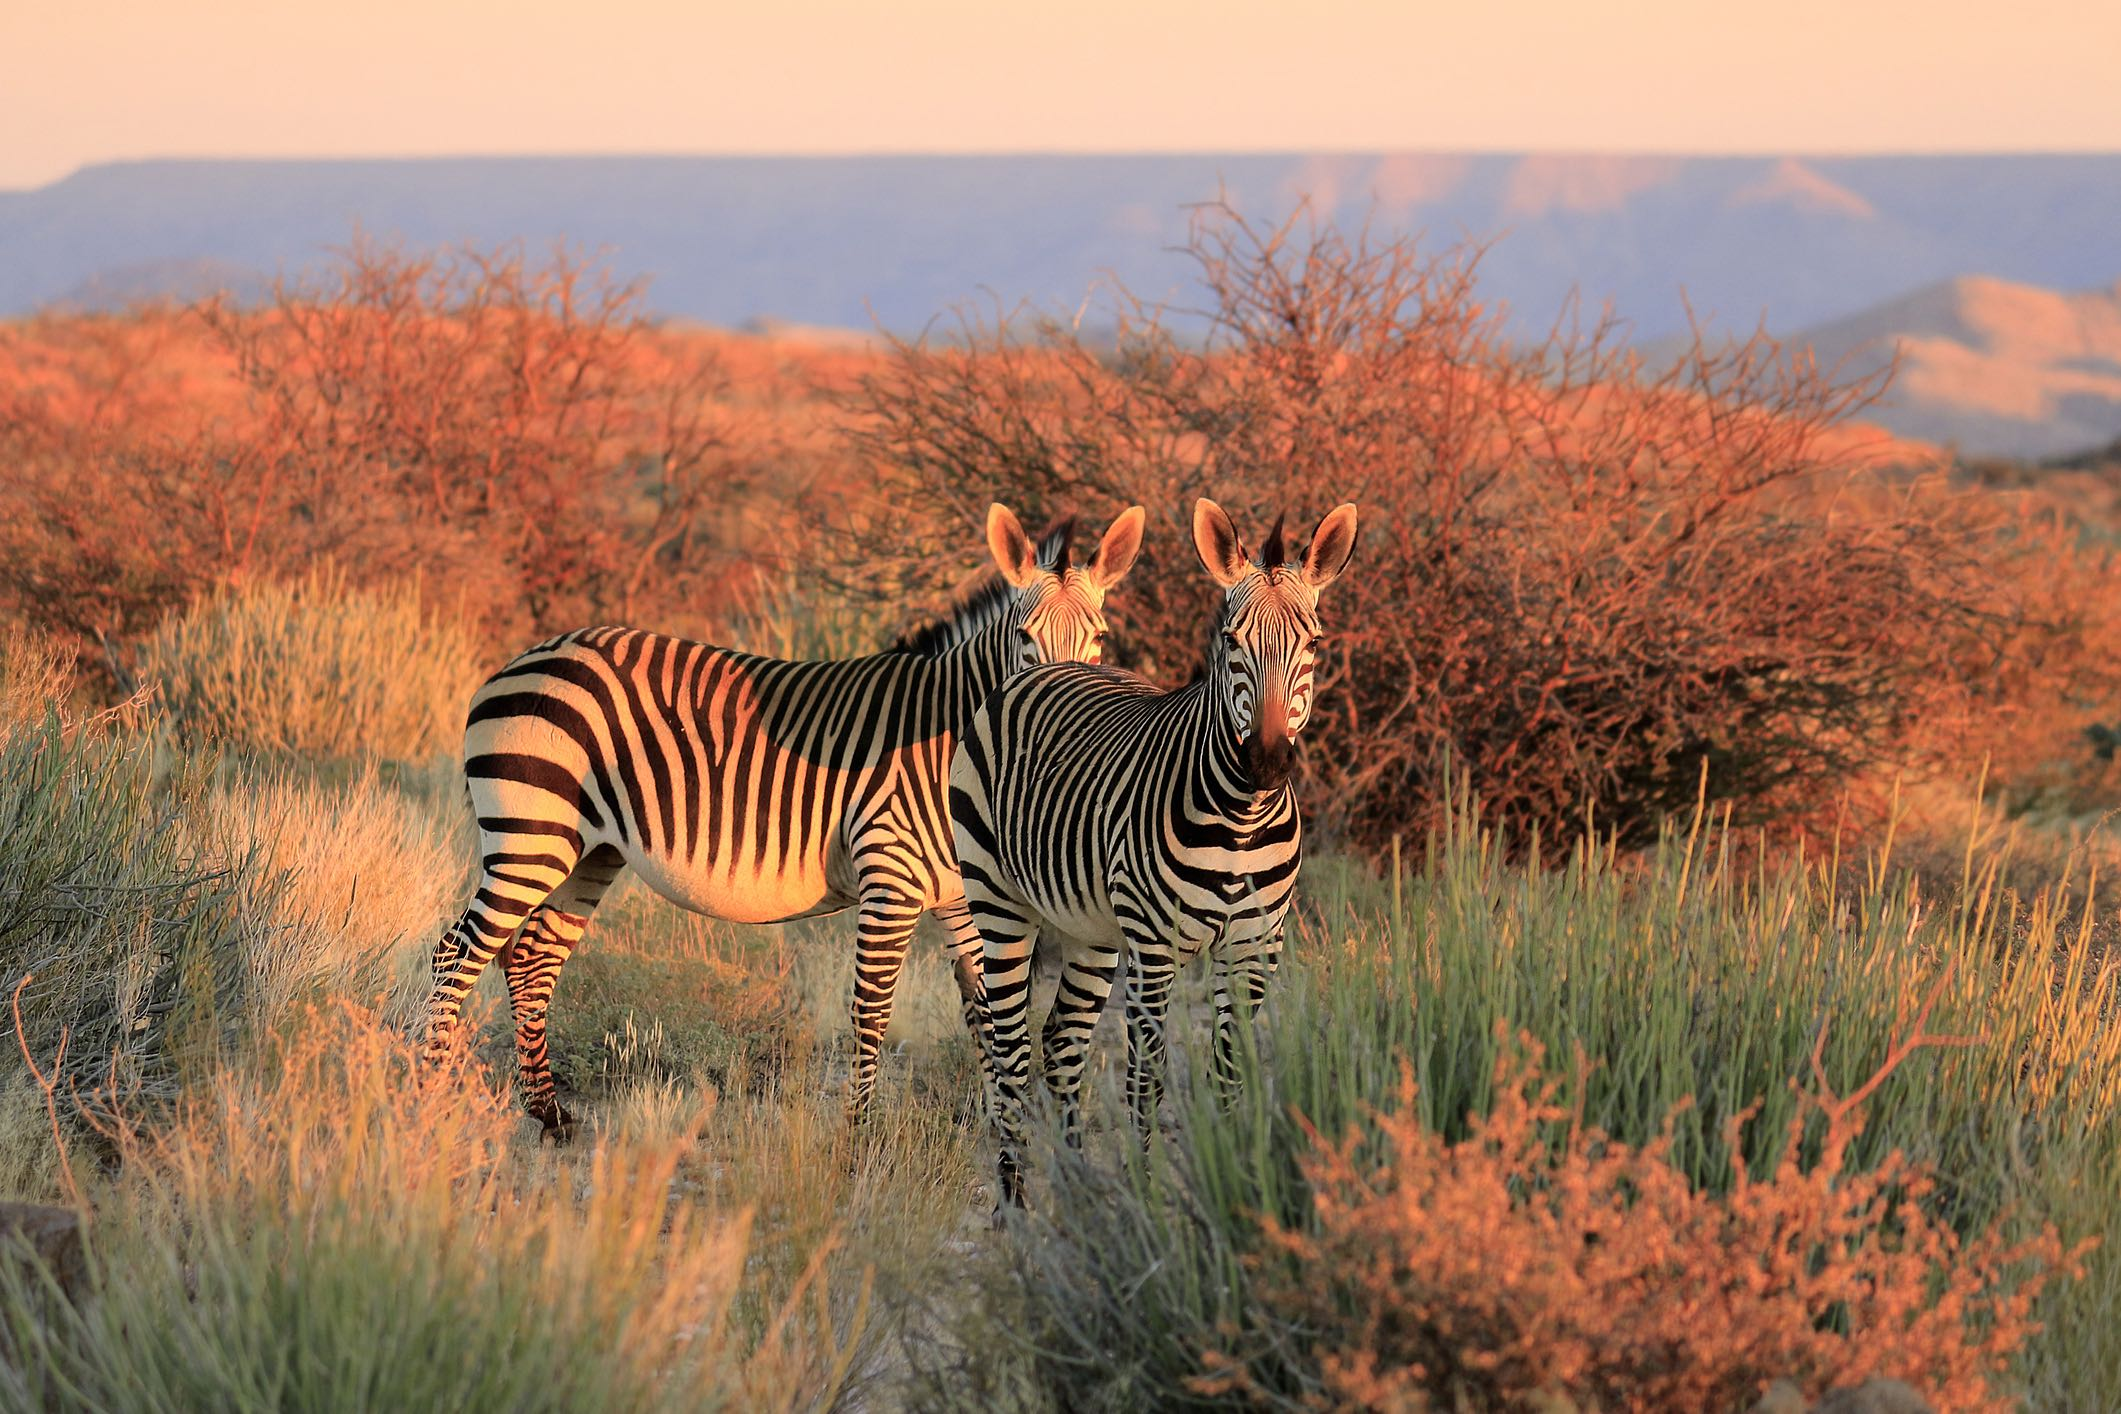 Zebras on South Africa Safari